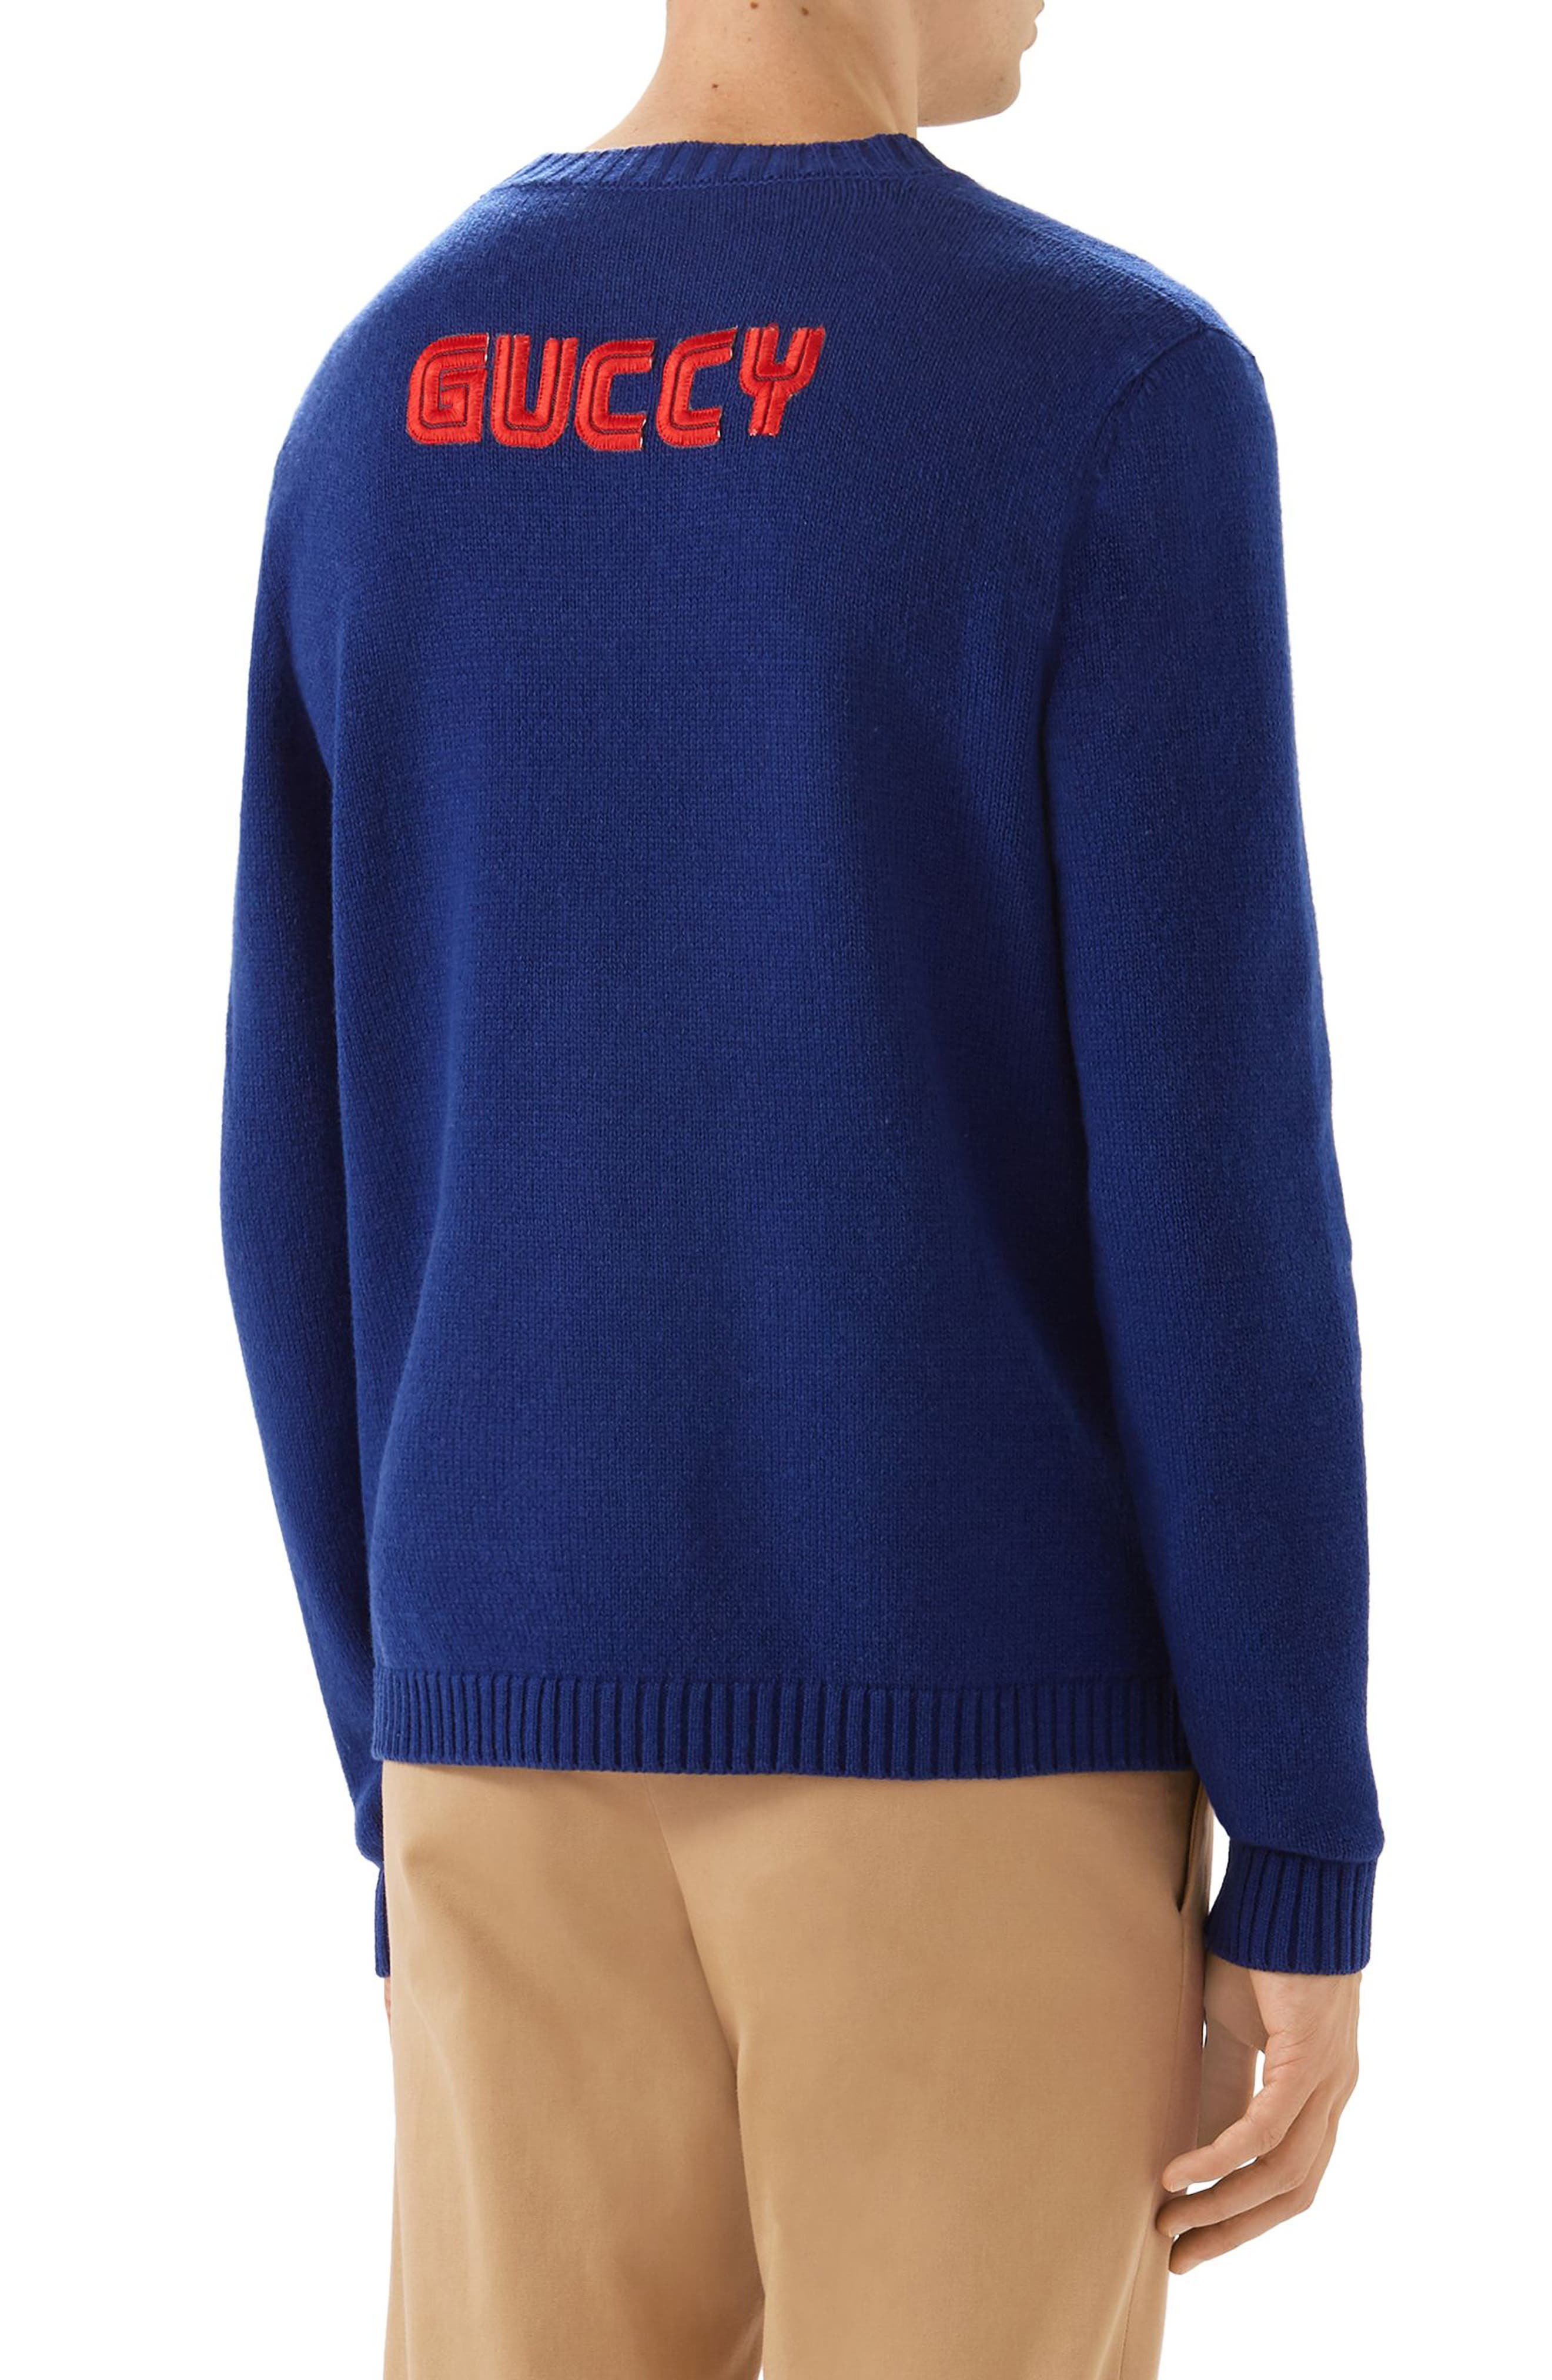 Bugs Bunny Wool Sweater,                             Alternate thumbnail 2, color,                             493